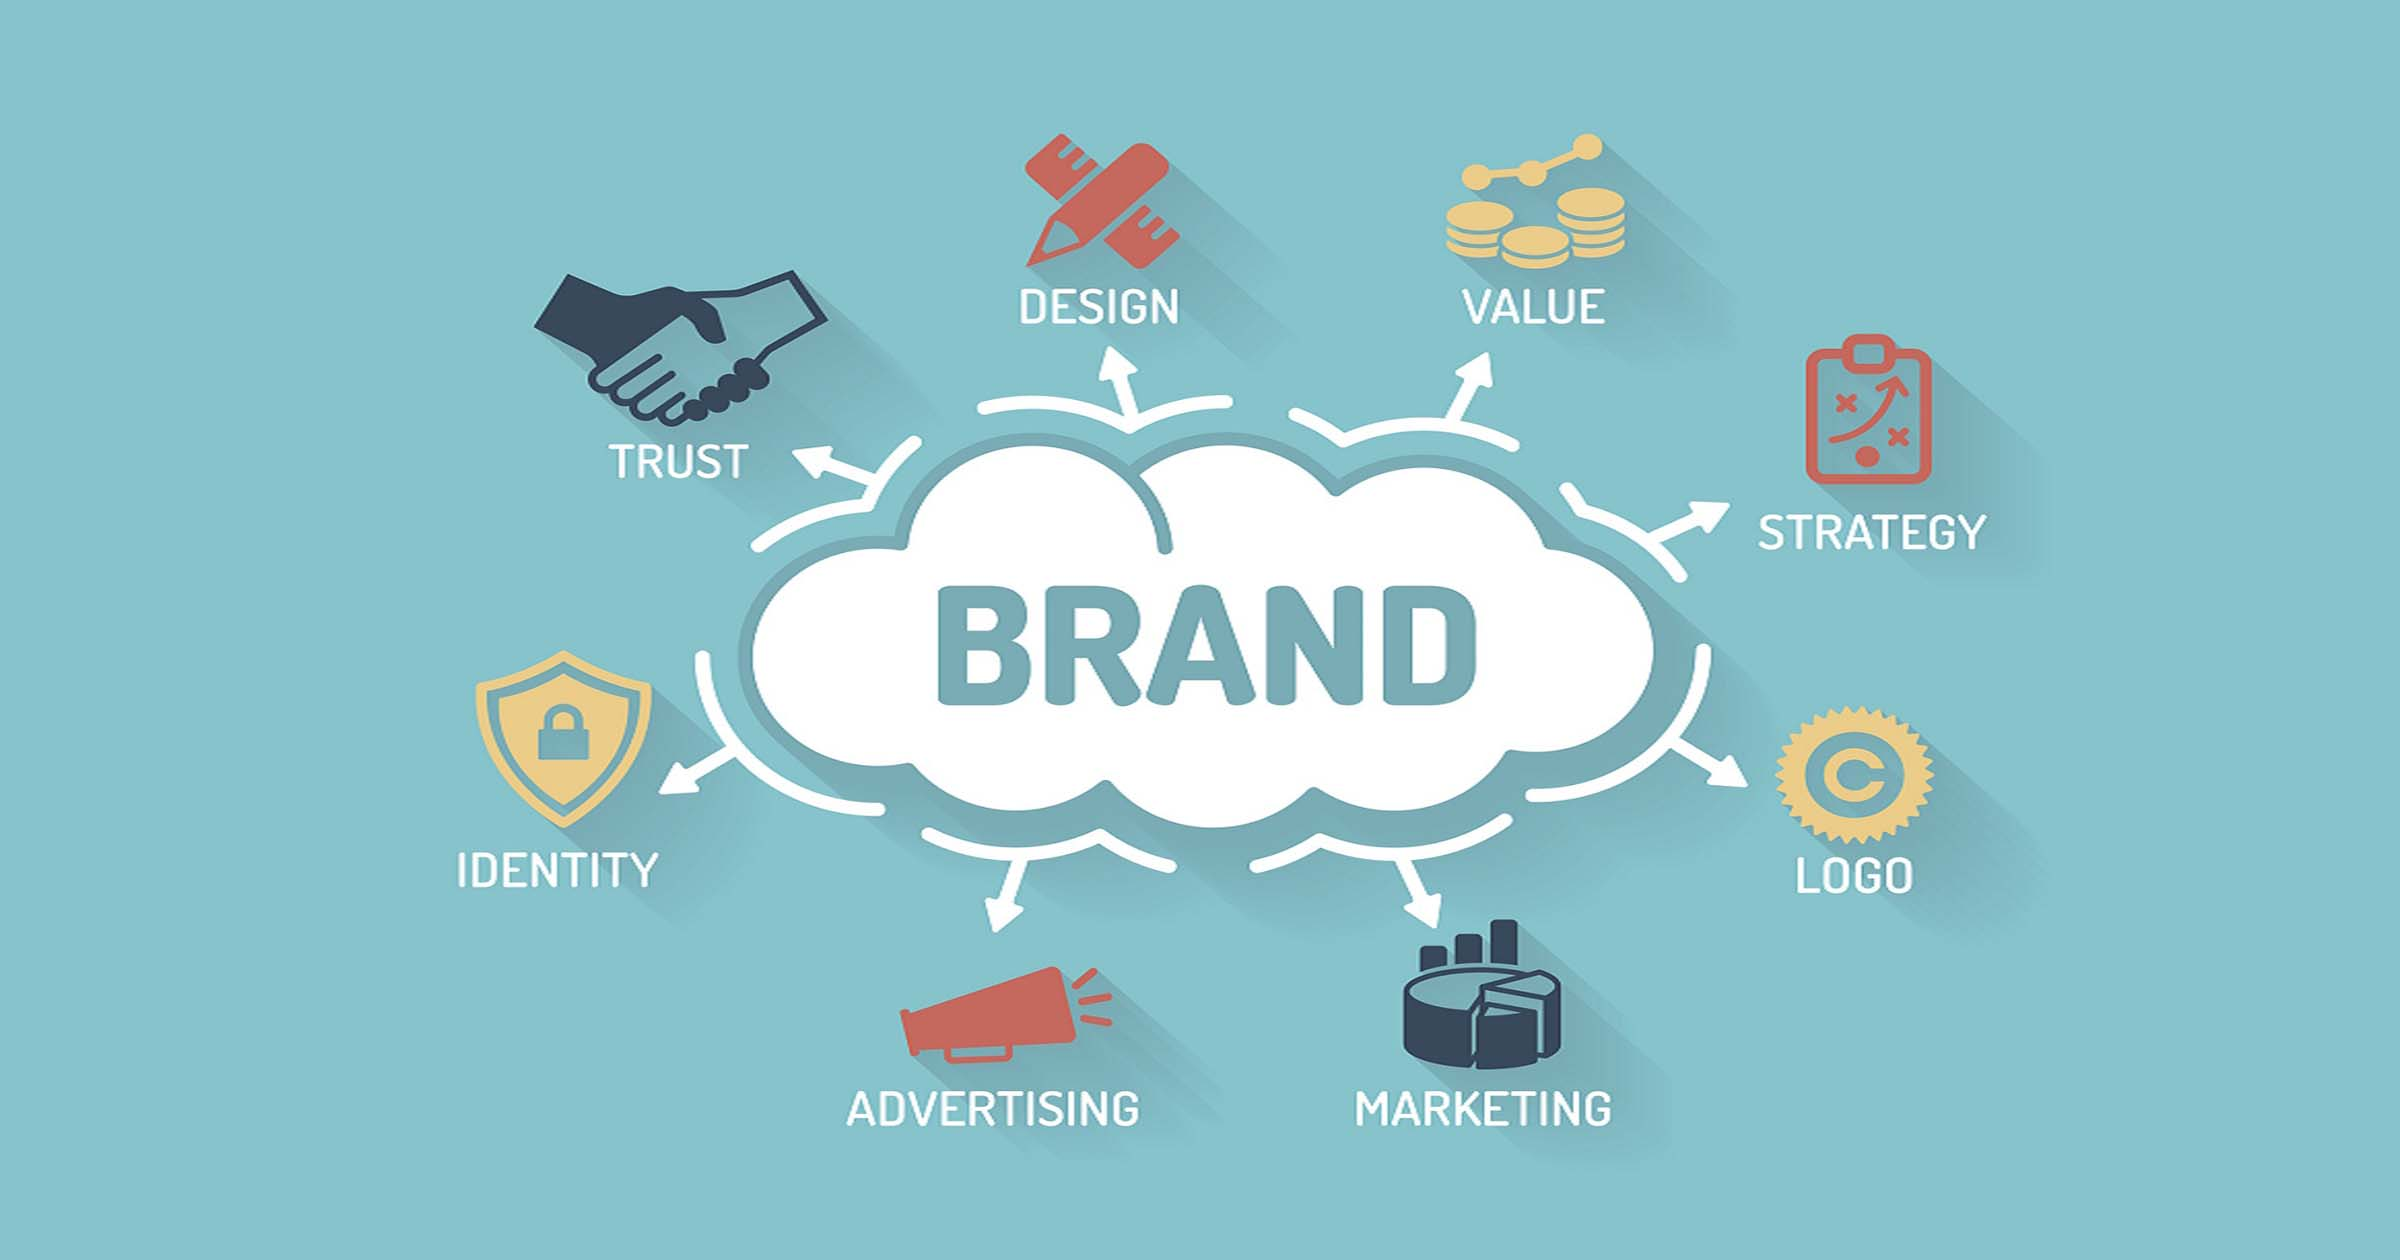 How to integrate your brand across your entire company